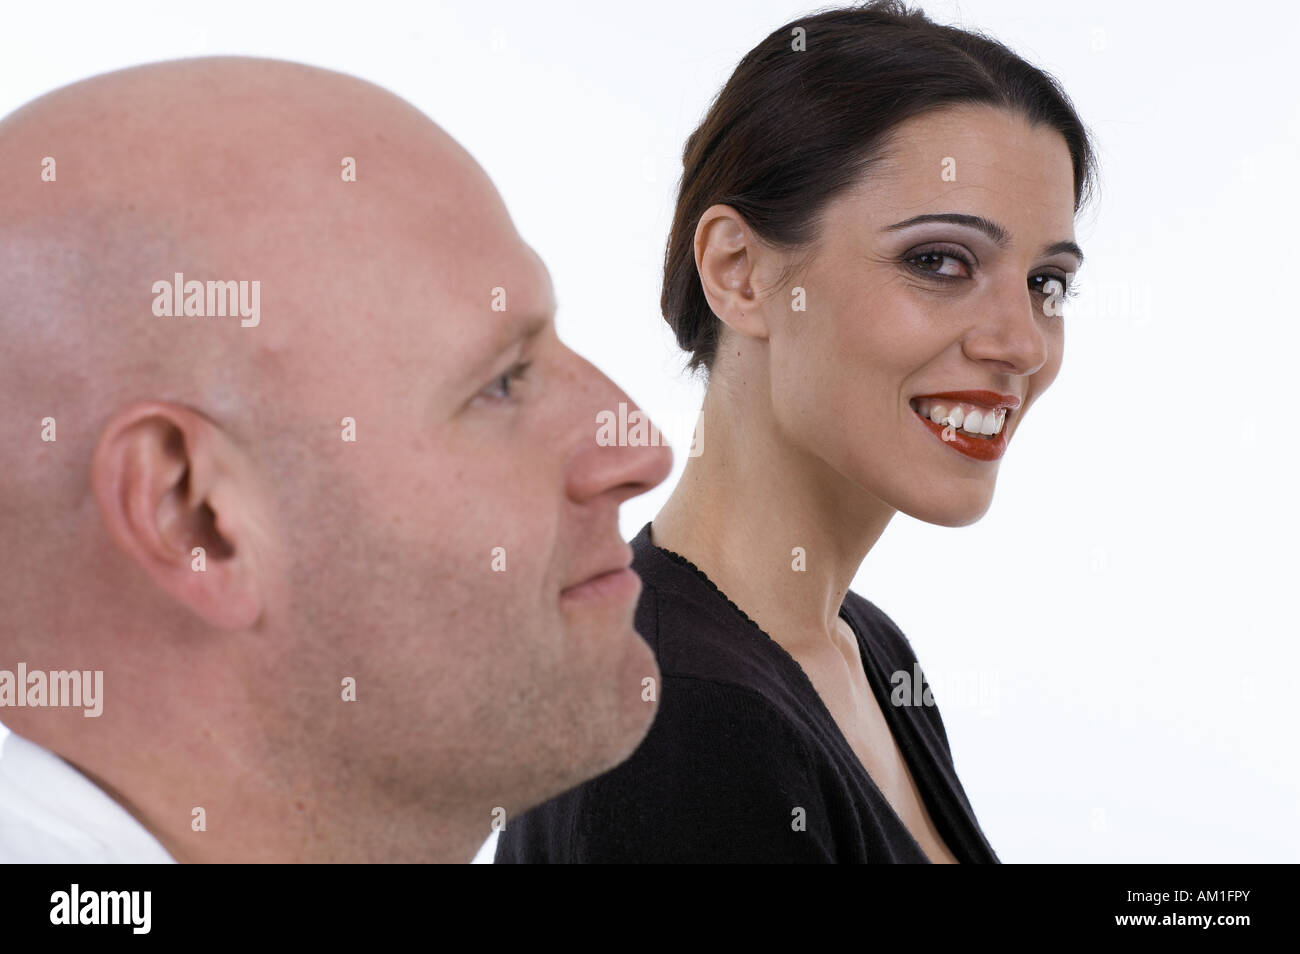 Woman looks coquettish to man - Stock Image